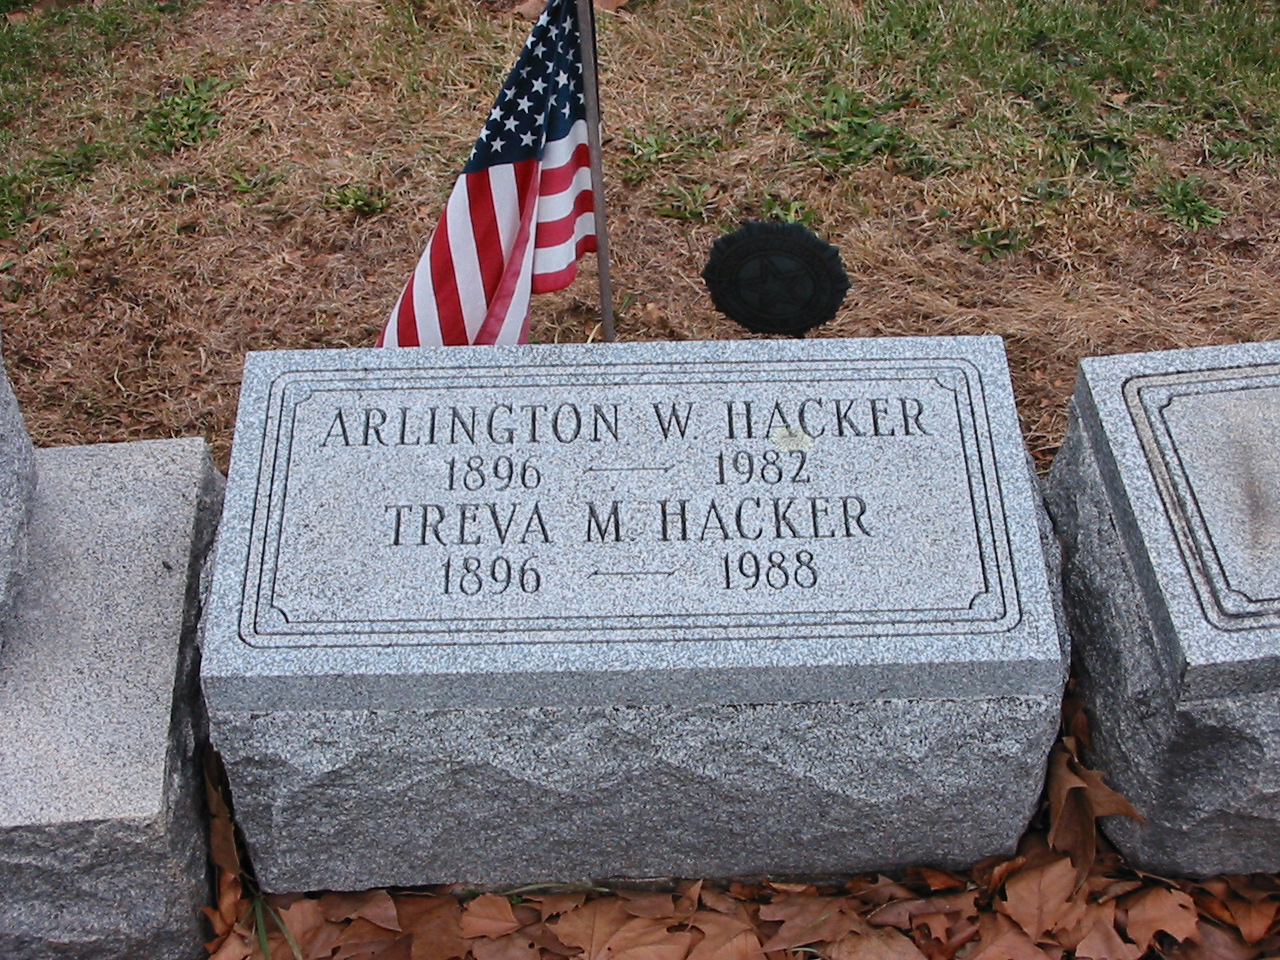 Gravestone of Arlington W. and Treva M. Hacker